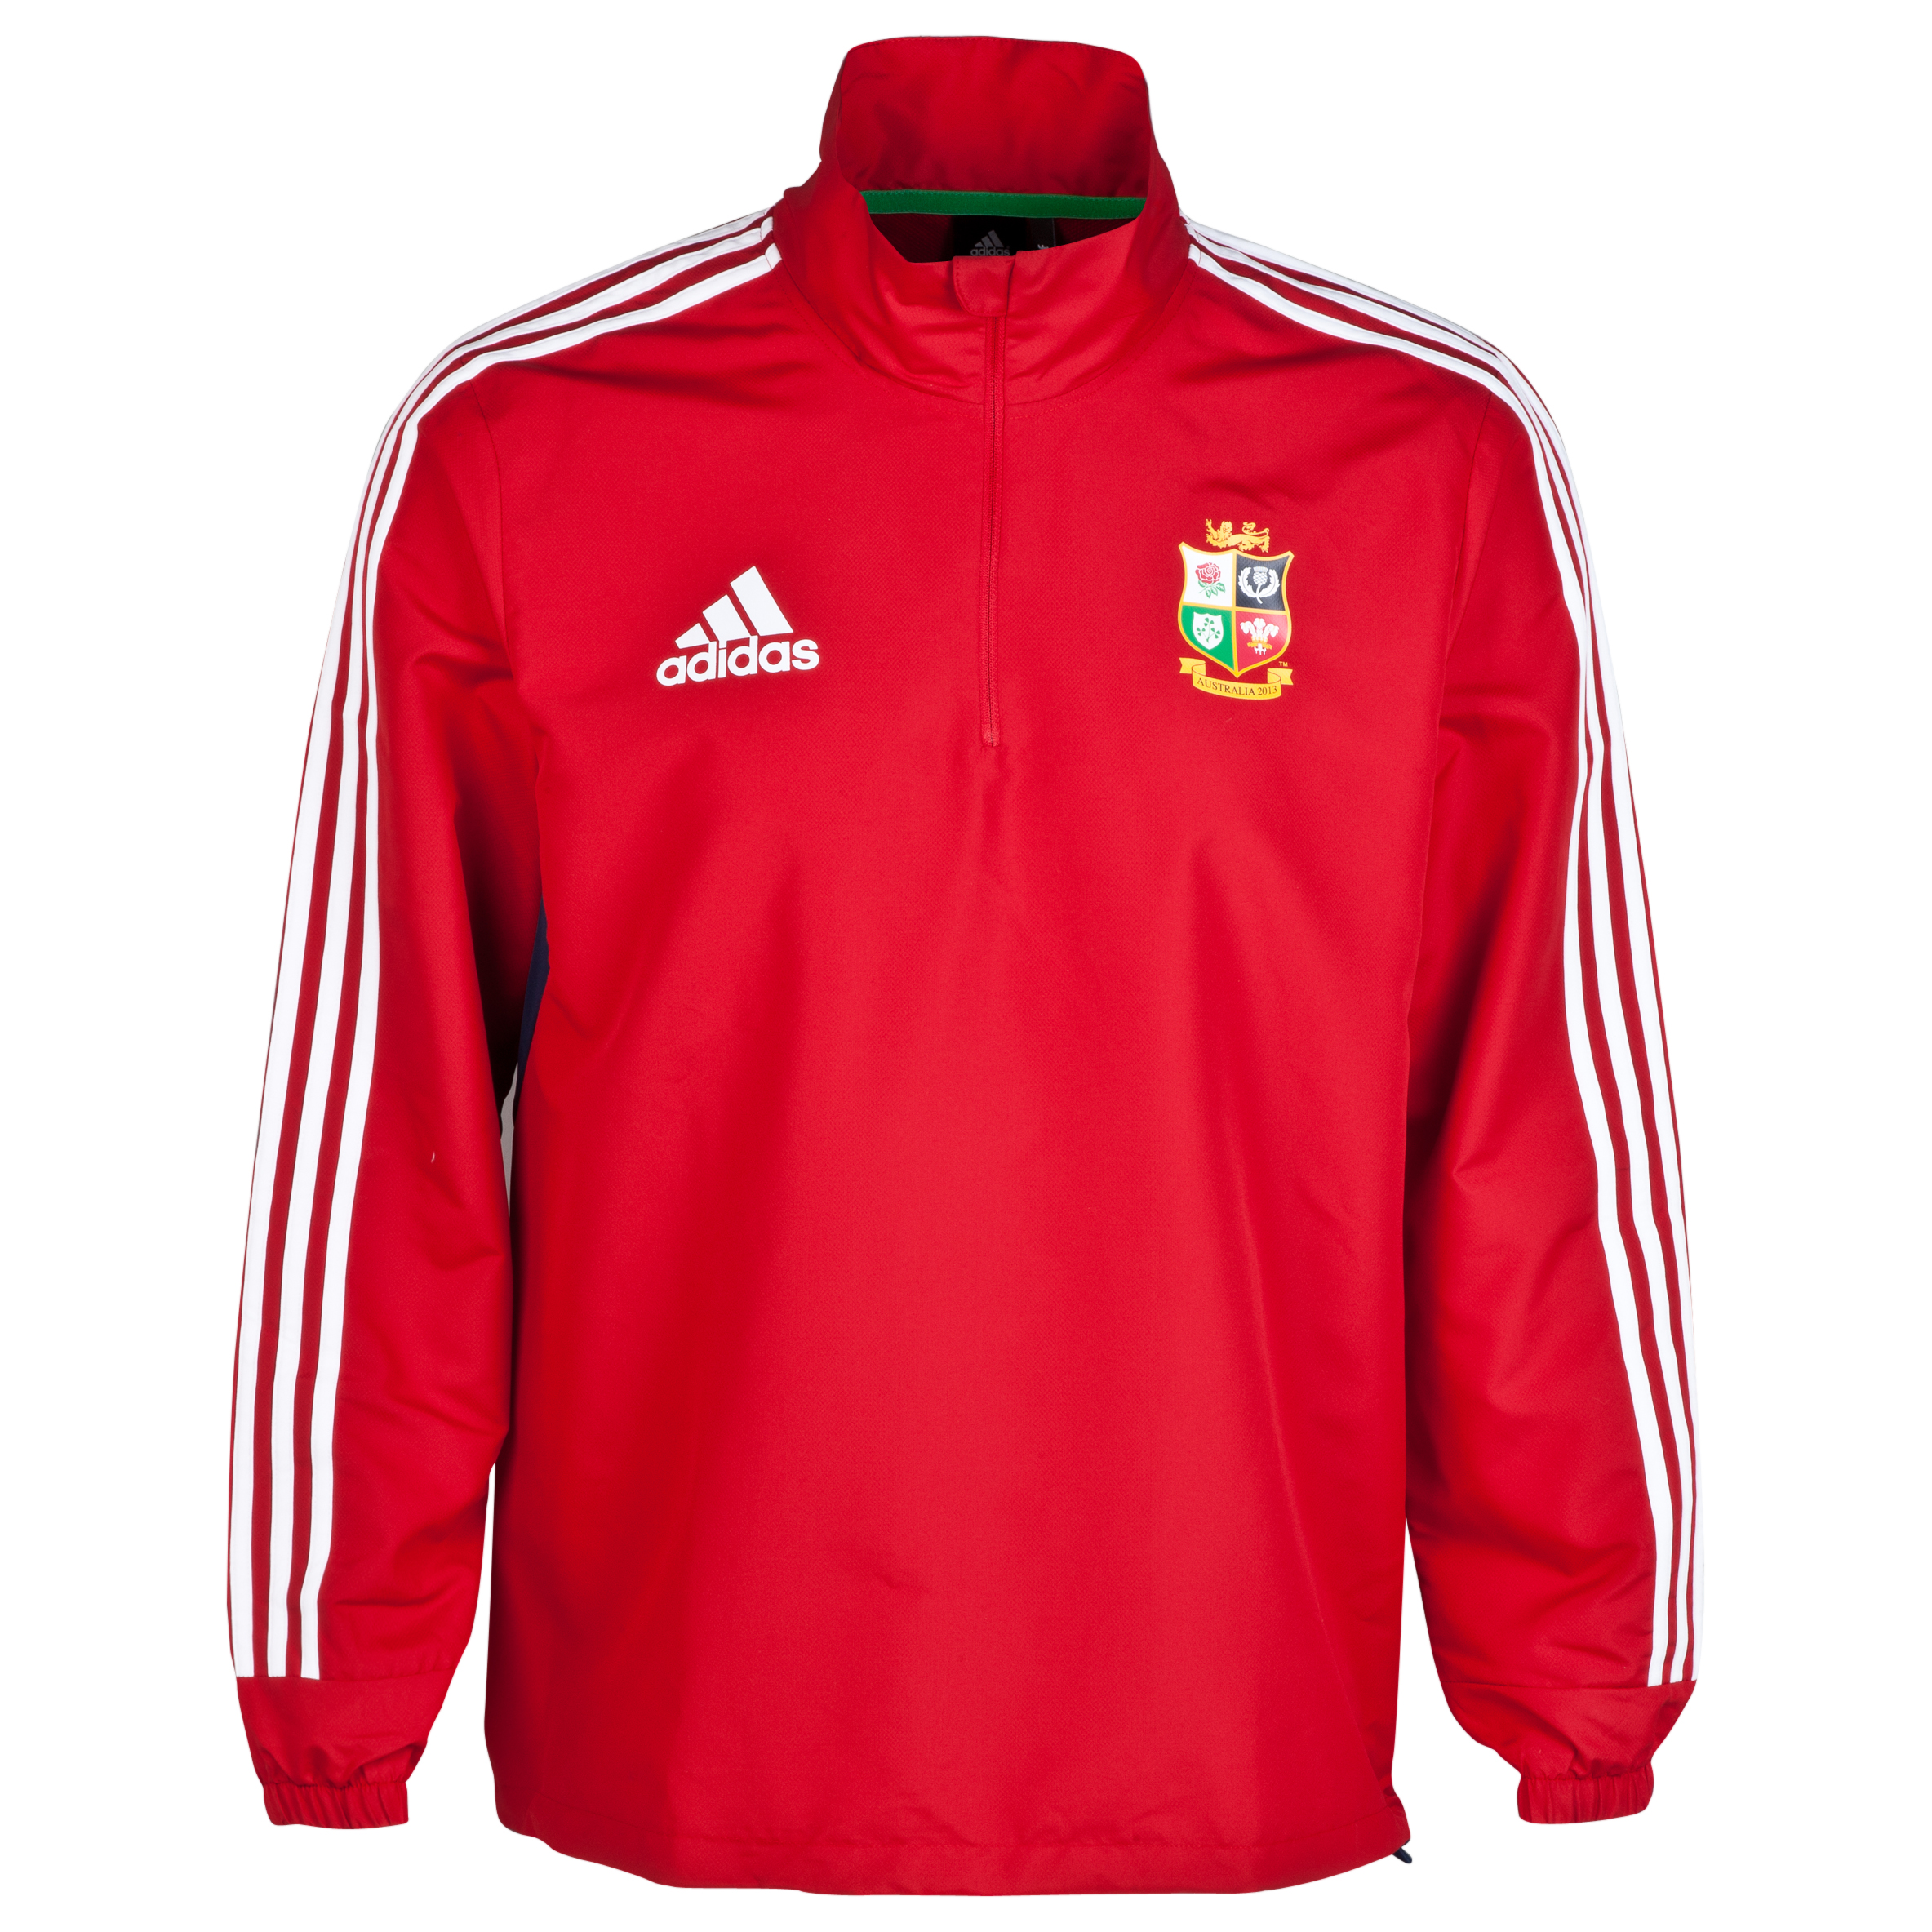 adidas British and Irish Lions Wind Jacket - University Red/White